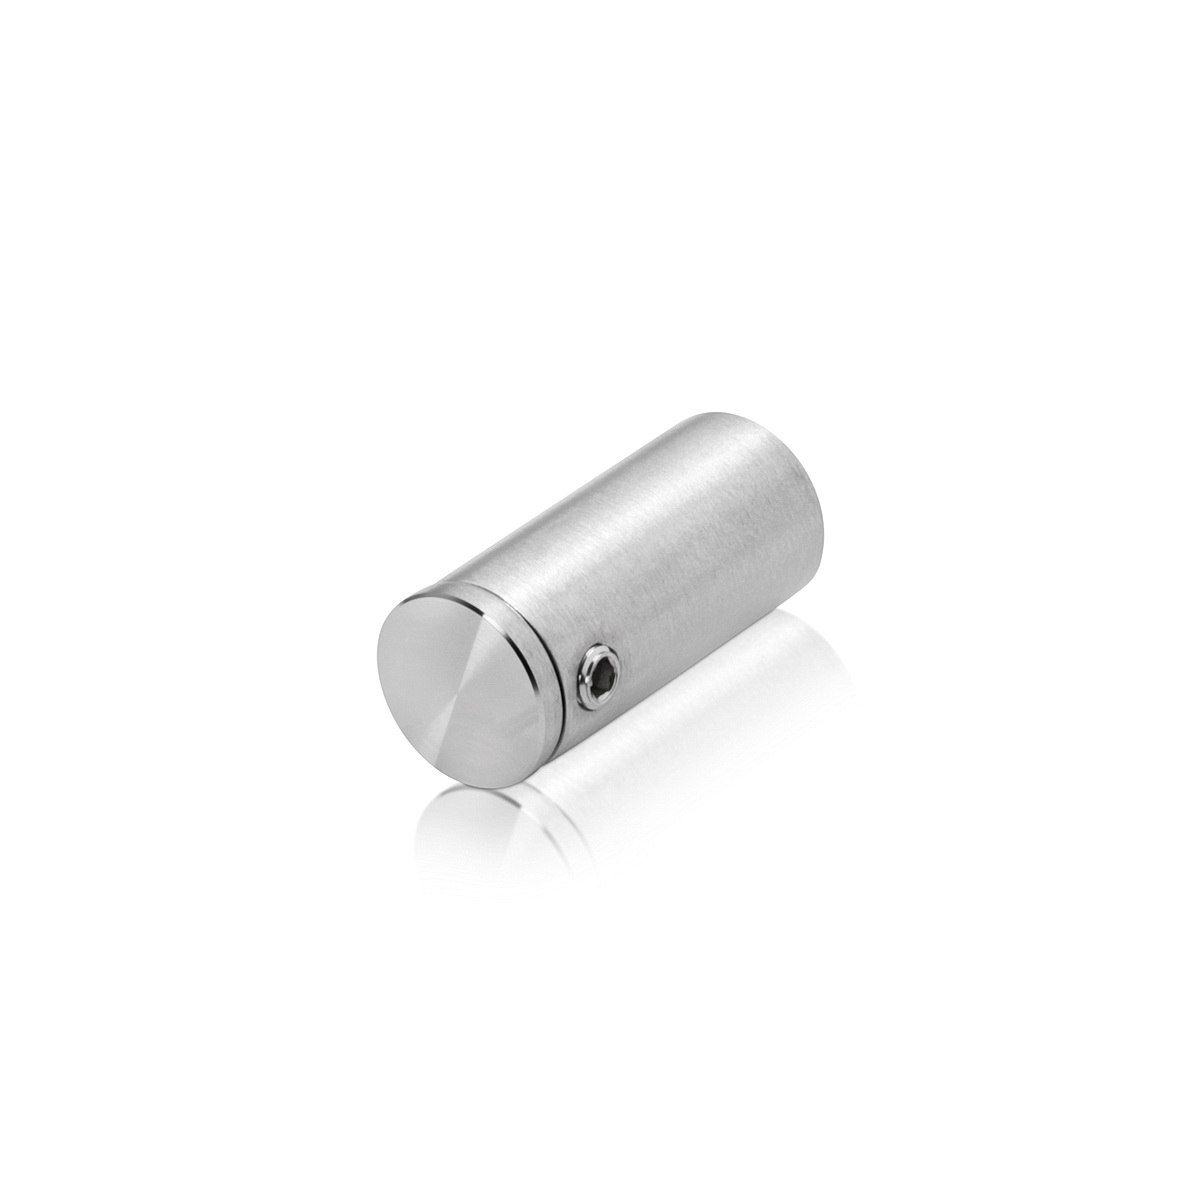 1/2'' Diameter x 1'' Barrel Length, Stainless Steel Glass Standoff Satin Brushed Finish  (Indoor or Outdoor Use)